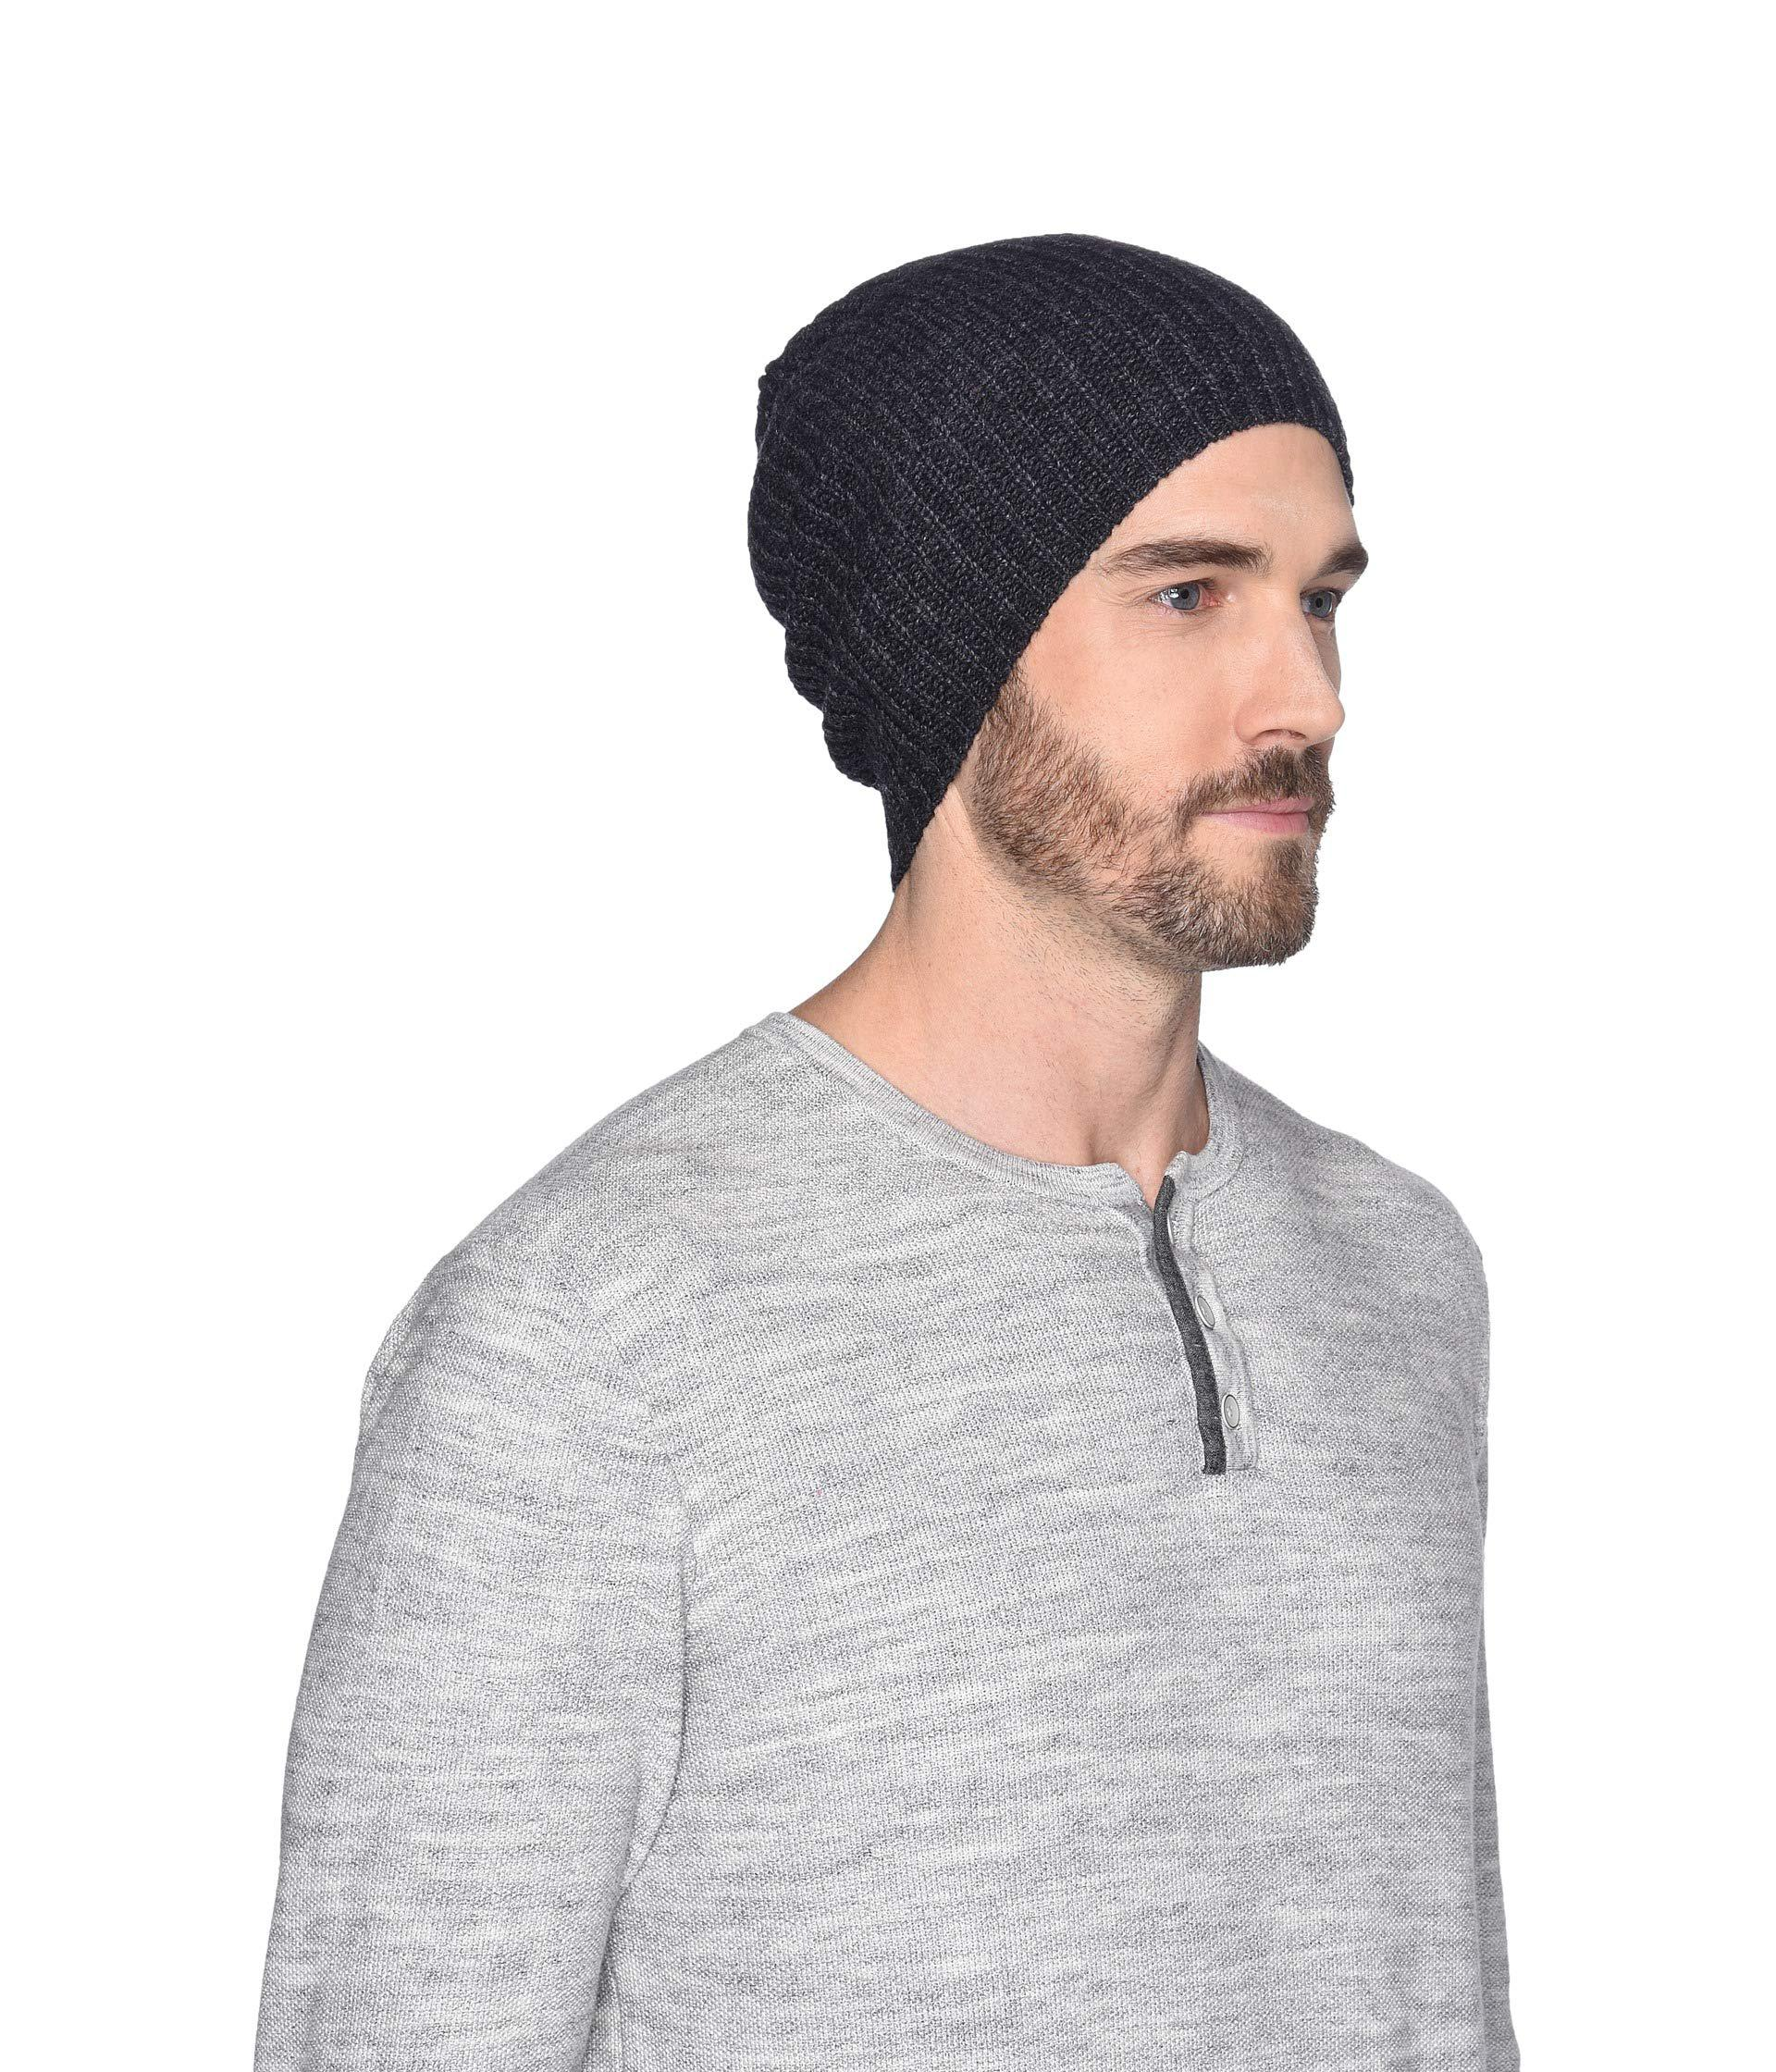 Lyst - Ugg Cardi Stitch Knit Hat (black) Beanies in Gray for Men bc65799771b2